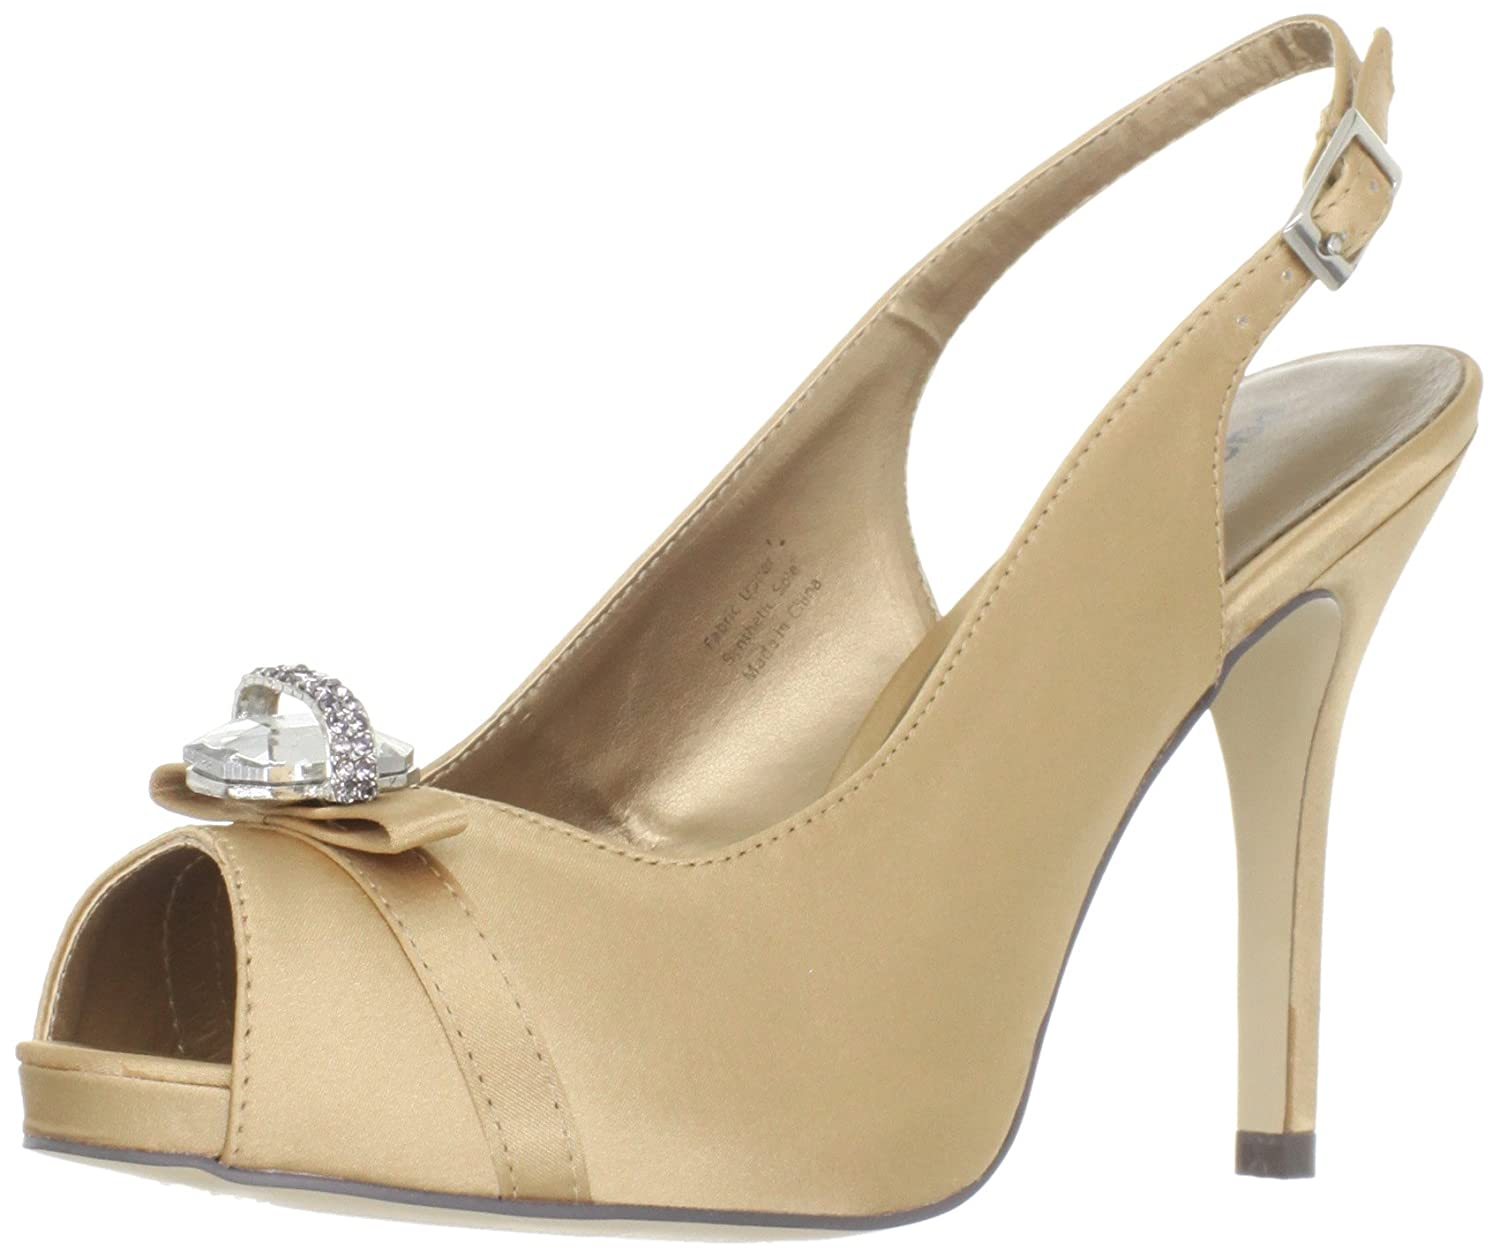 Paco (Sand Paco Majus, Sandales femme Beige femme (Sand 29) 5073466 - automatisms.space